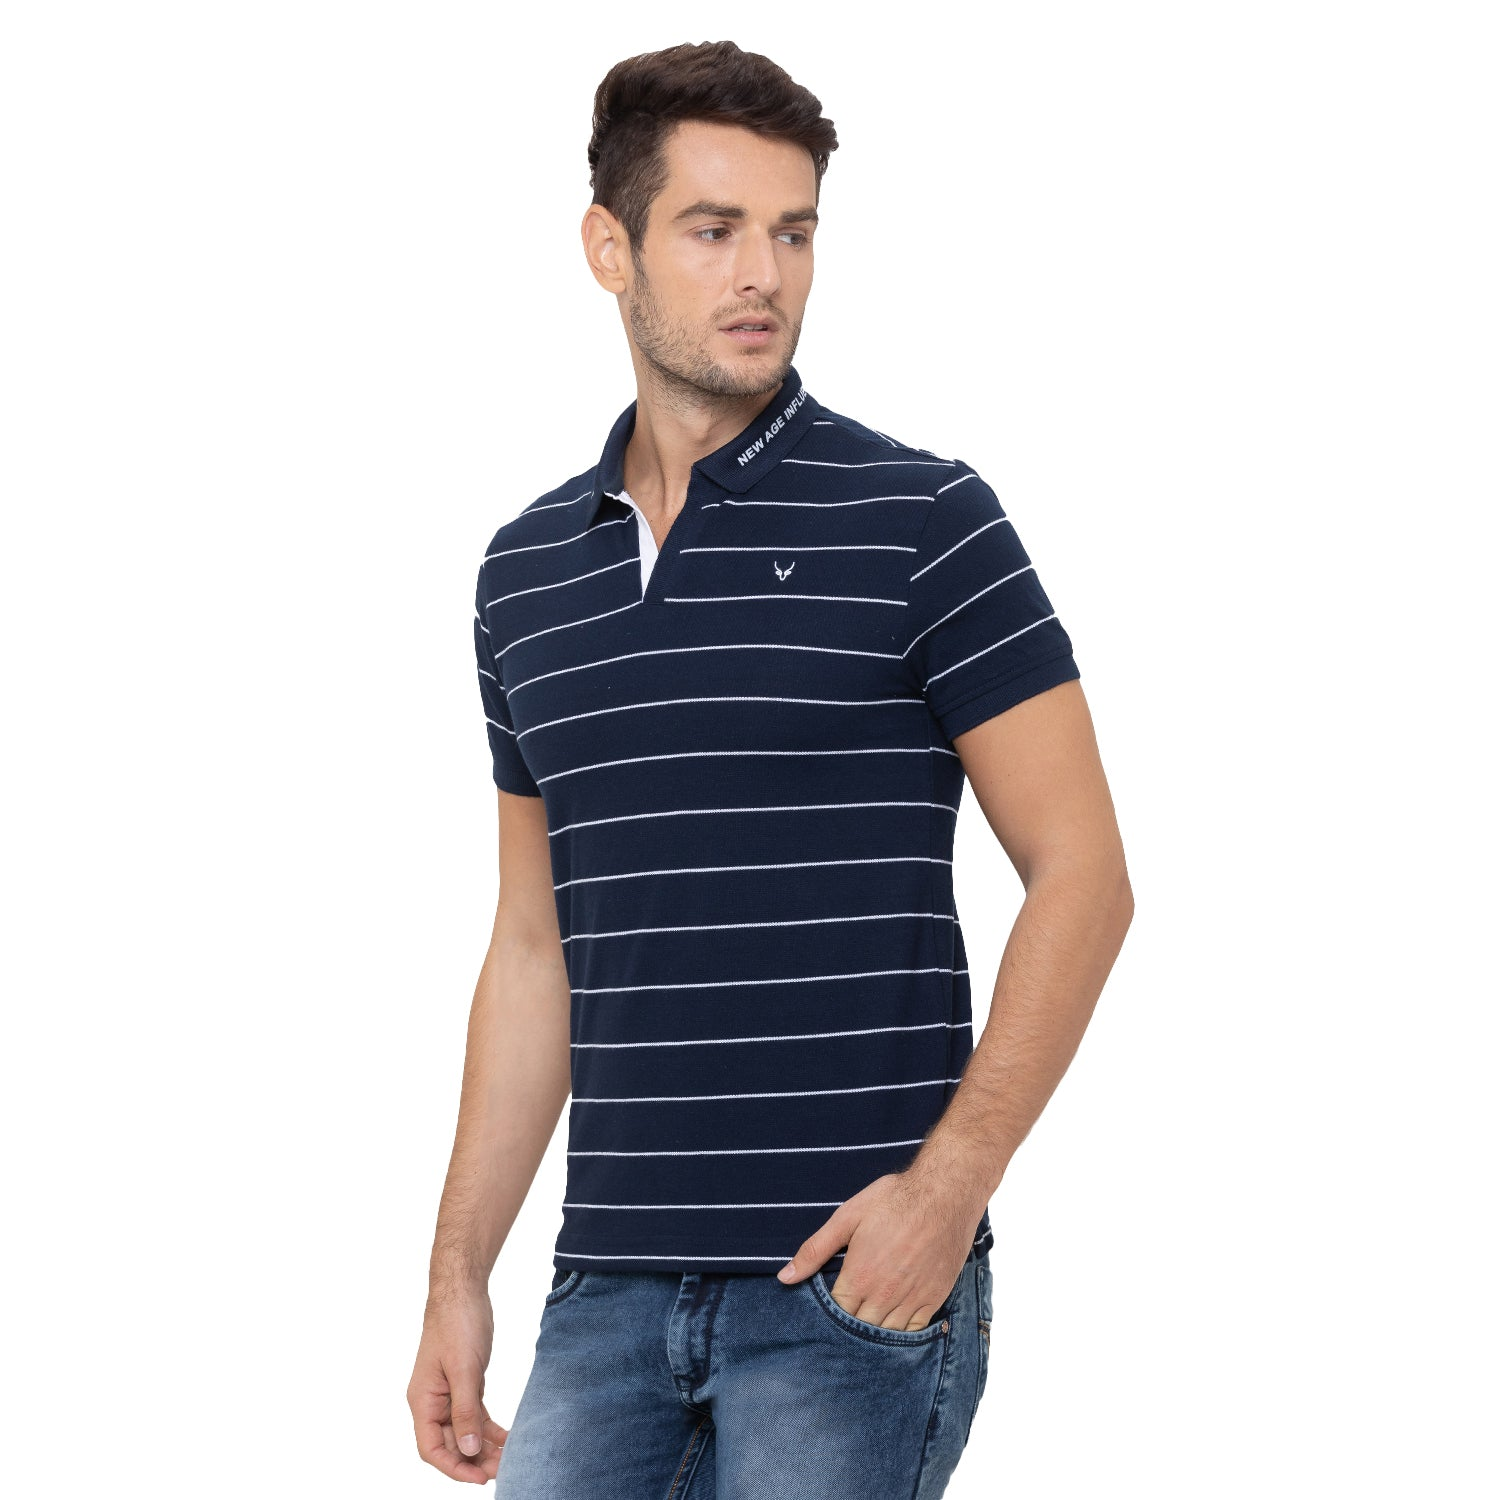 Globus Navy Blue Striped Polo T-Shirt-4